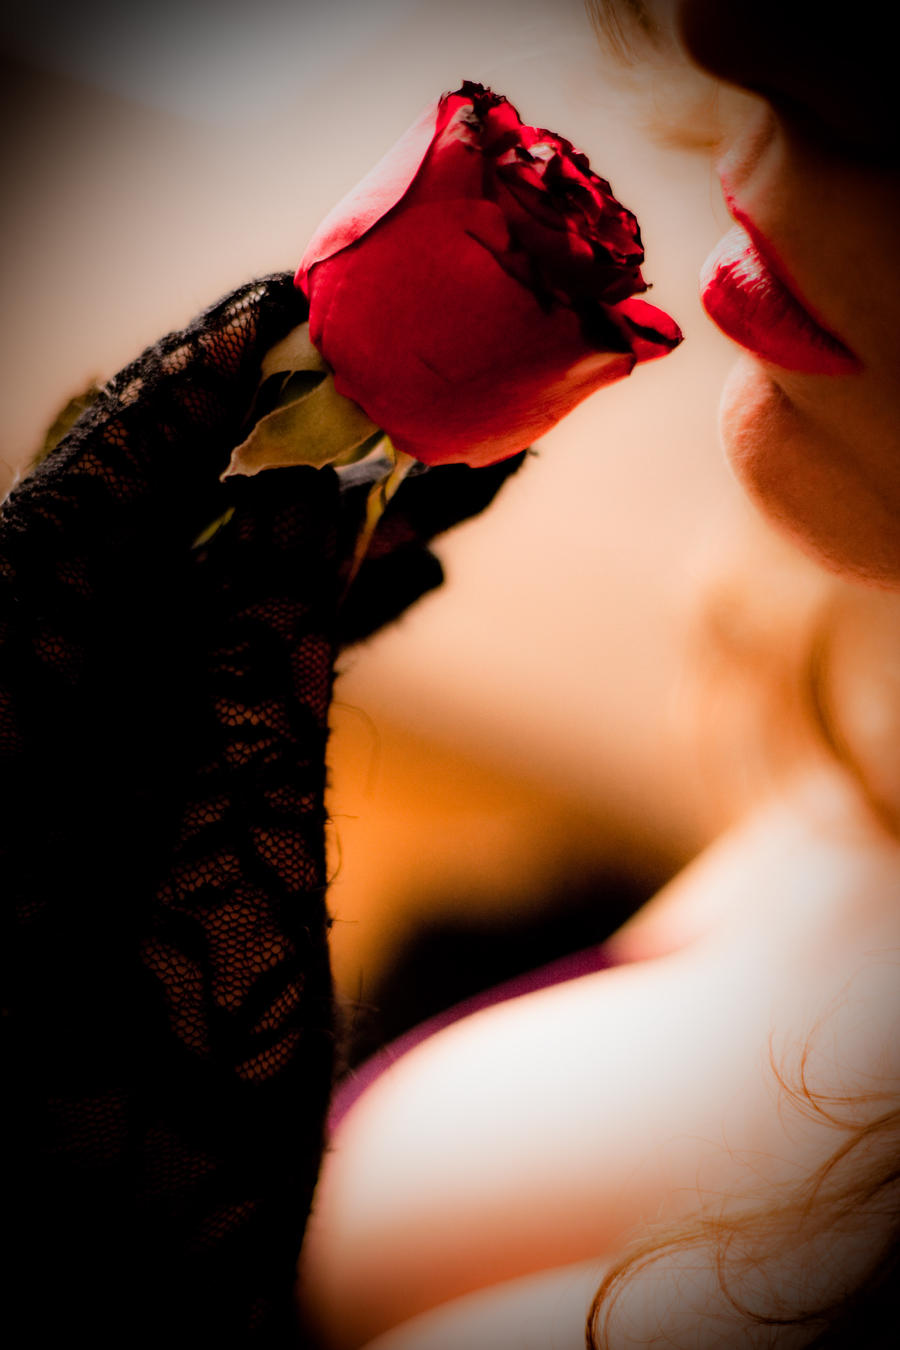 Red rose by Angelhand